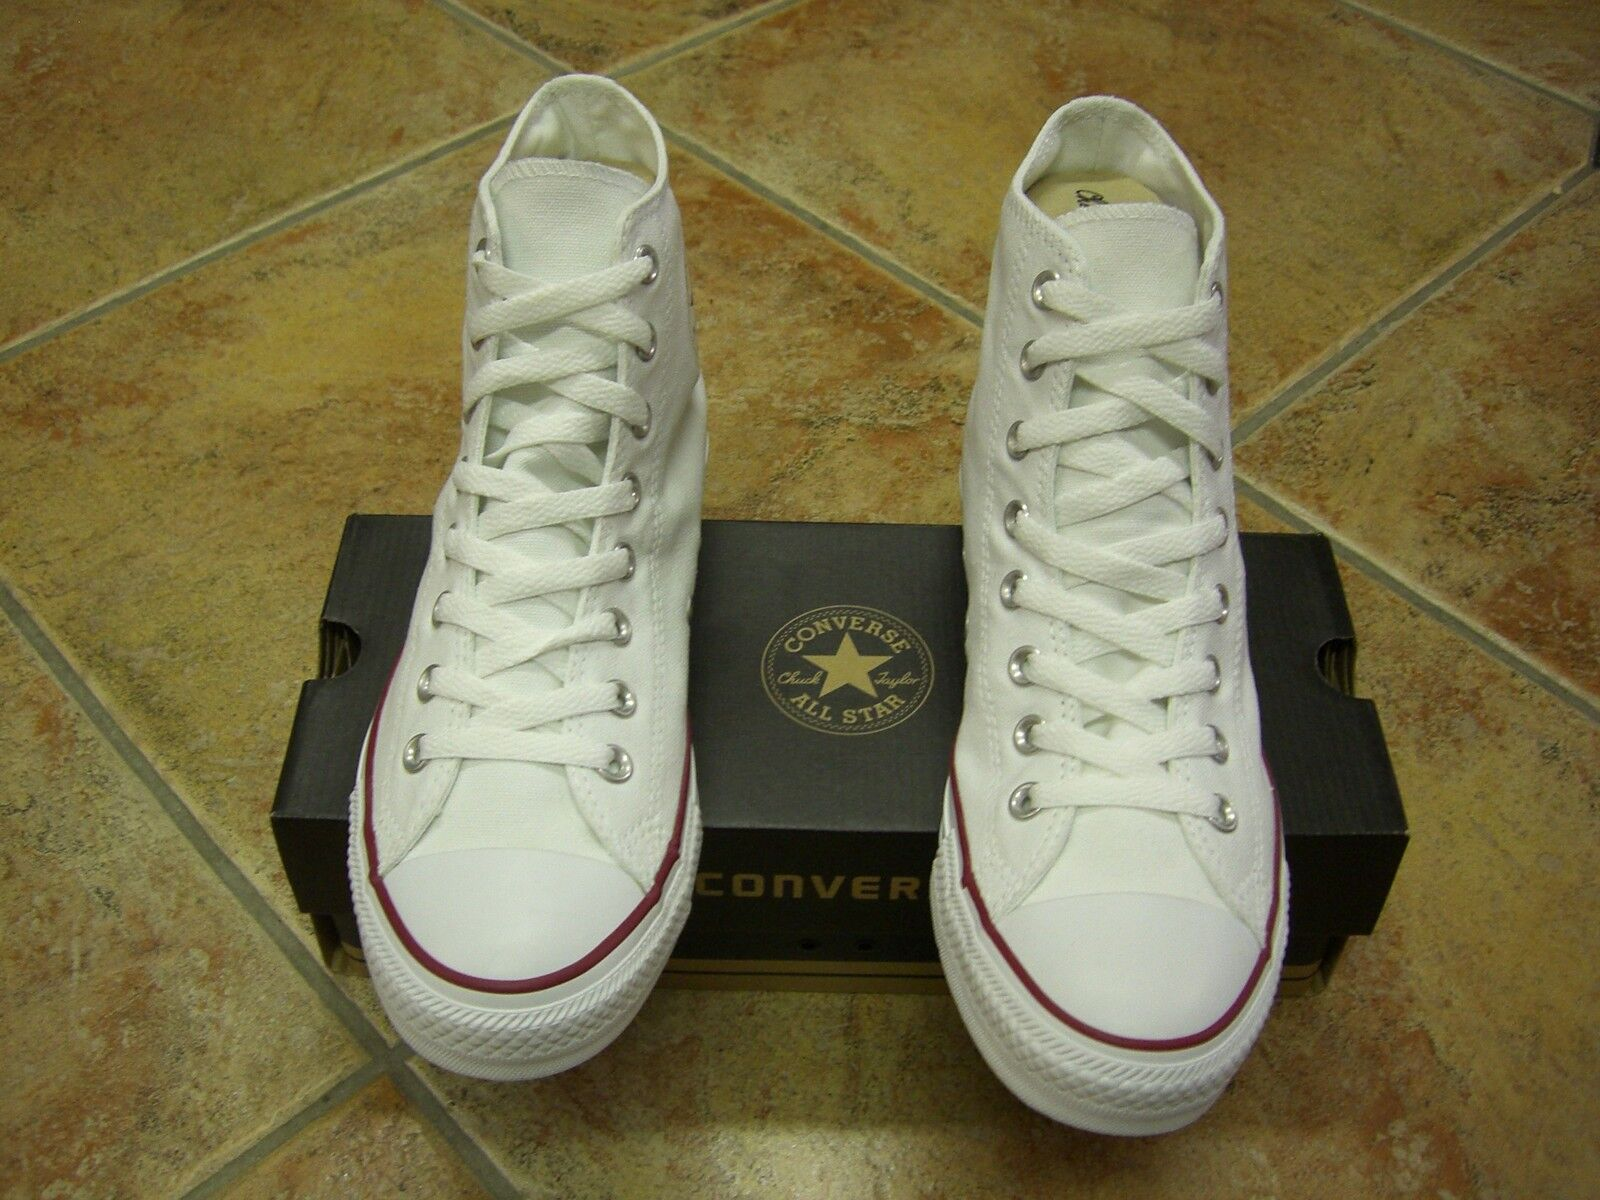 Converse Chucks All Star HI Gr.42 Optical White M7650